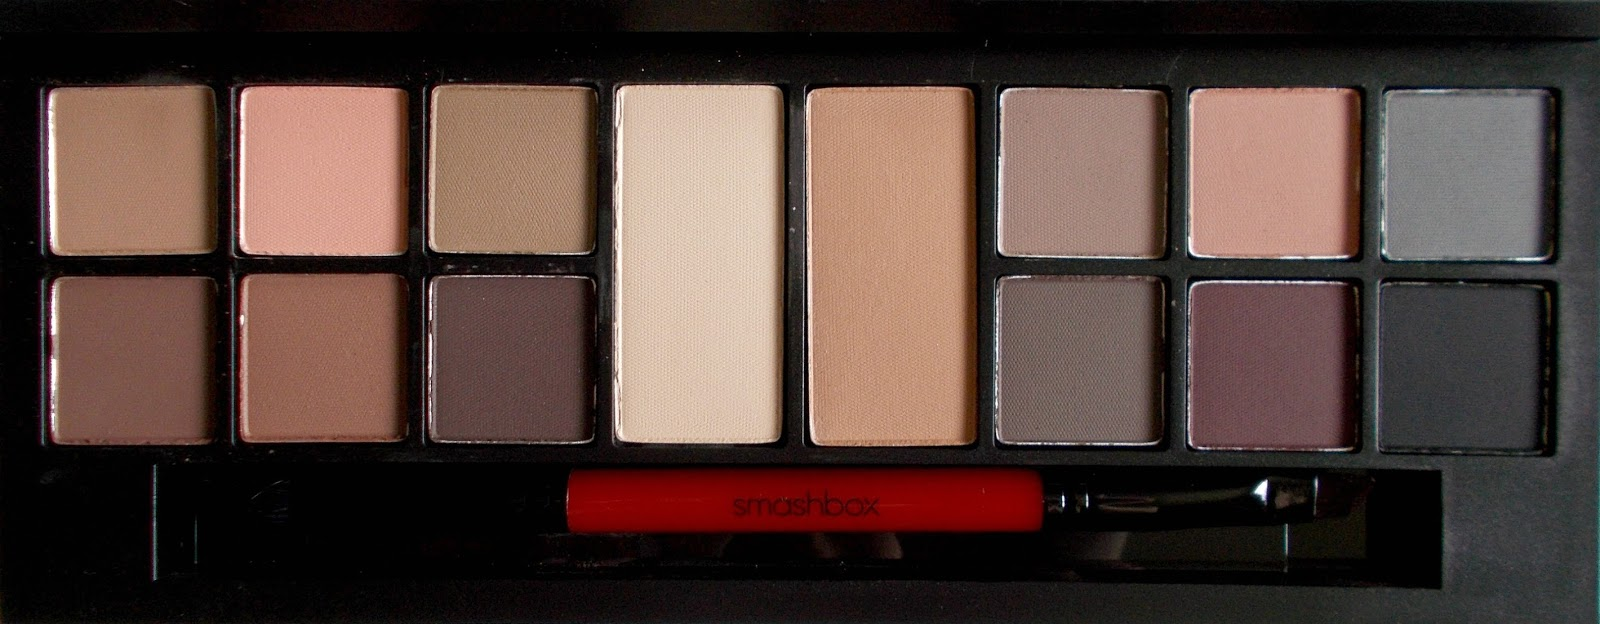 Smashbox Photo Matte Eyes eyeshadow palette review